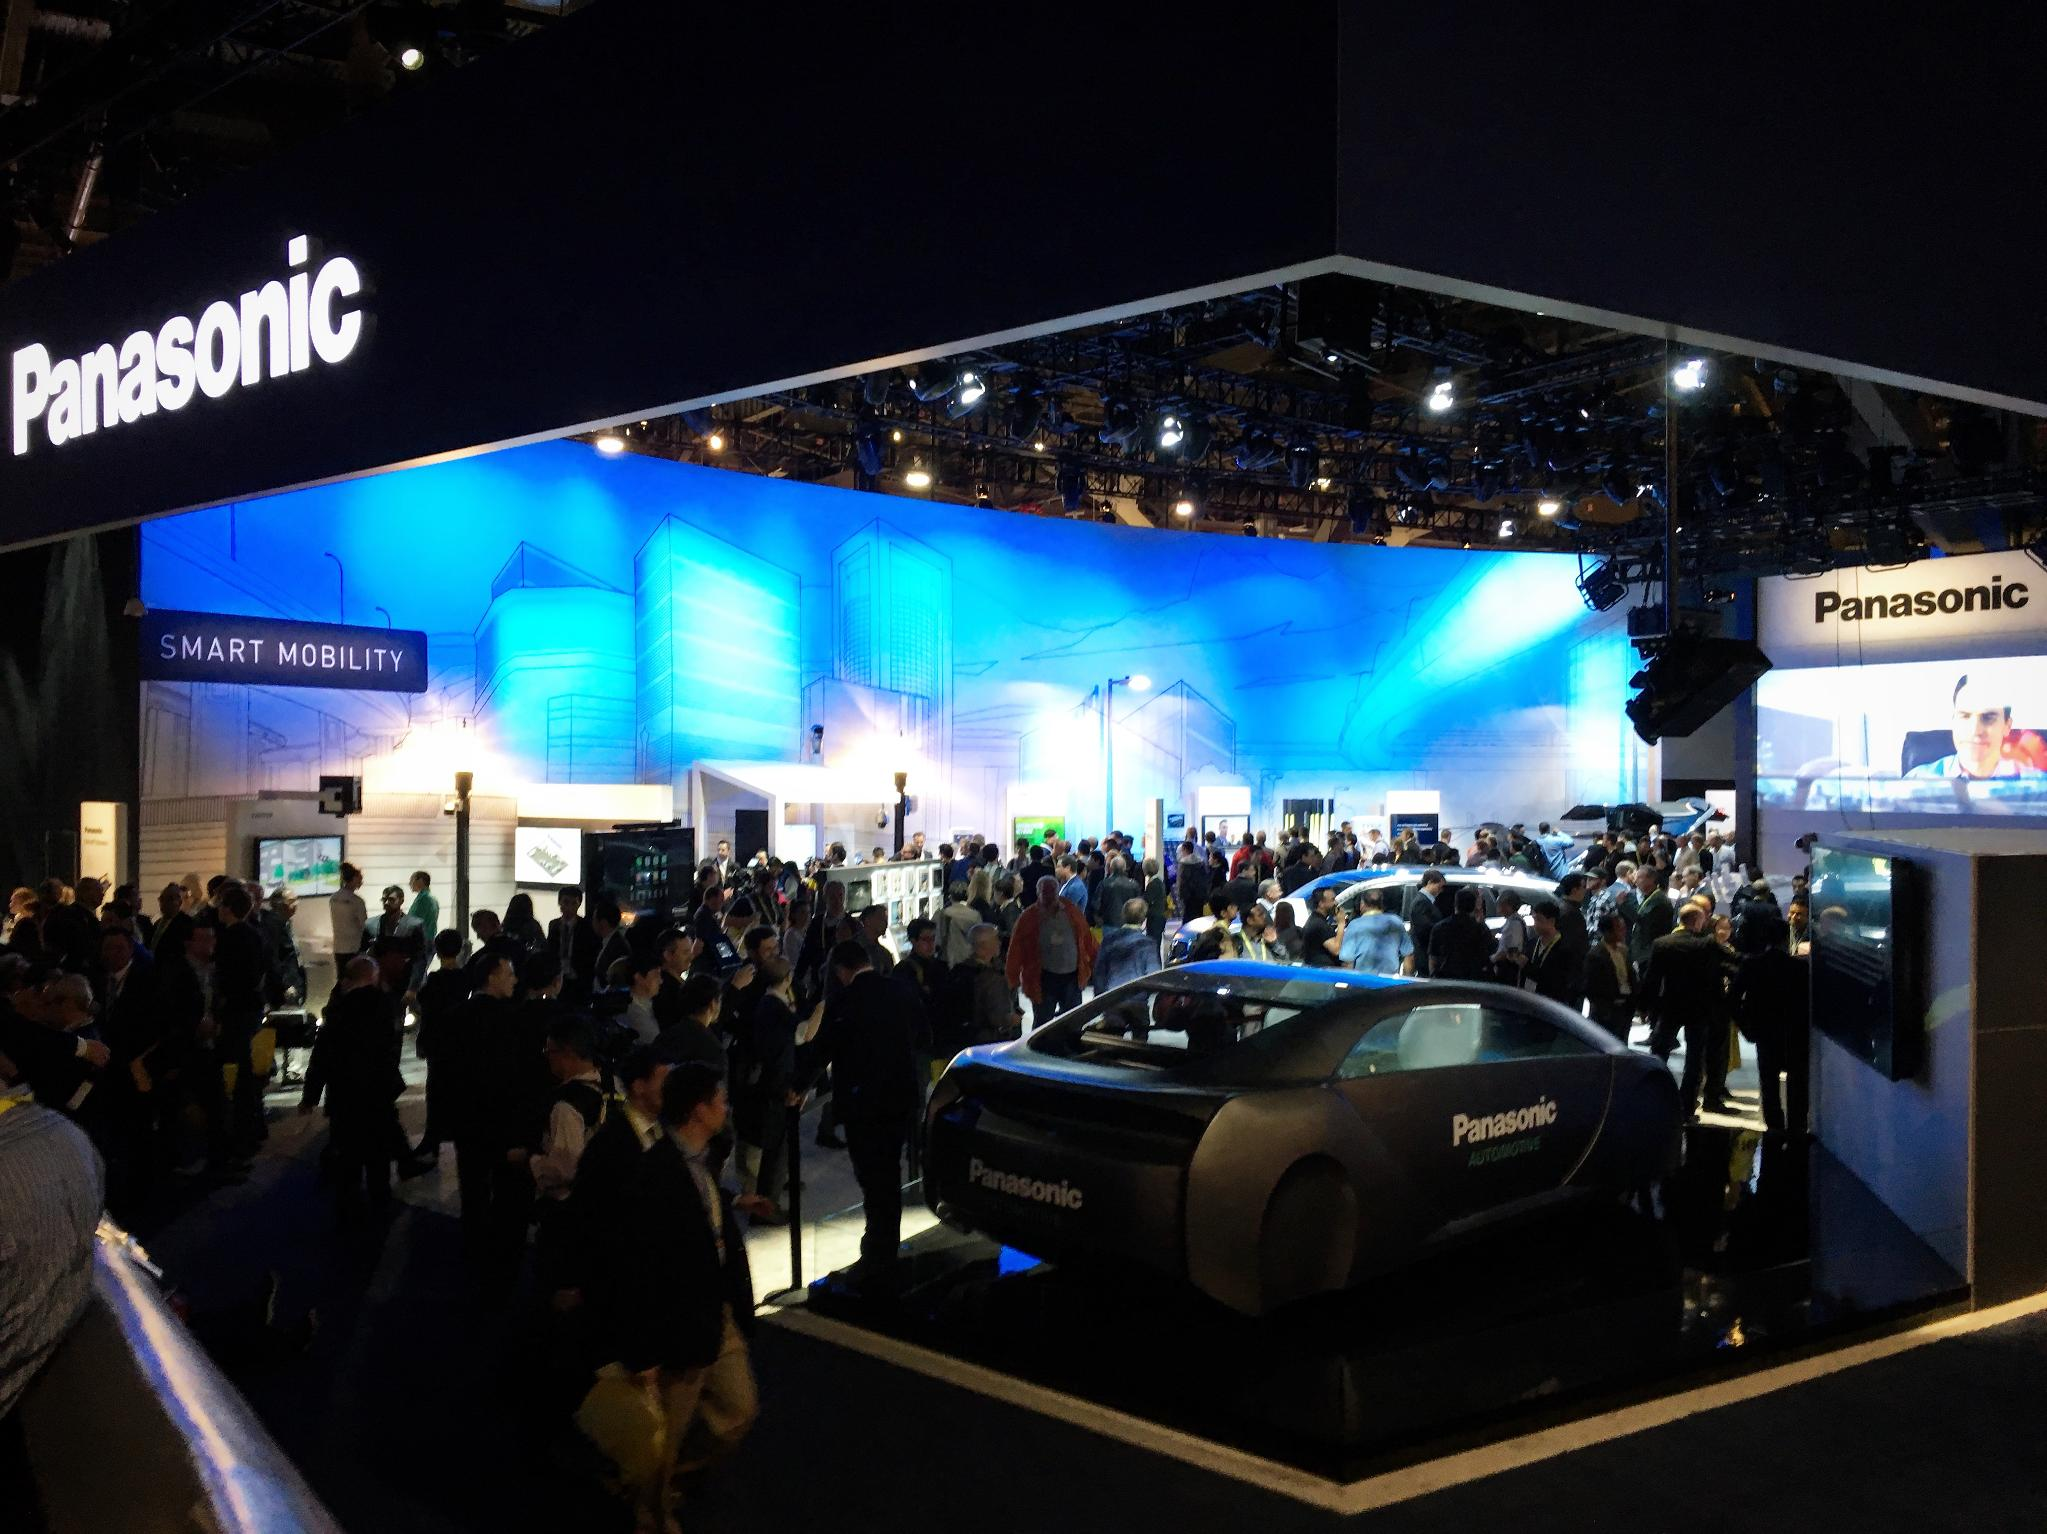 #CES2017 is in the books! As you can see, it was a rousing success. #PanasonicCES https://t.co/wk82vhL3eL